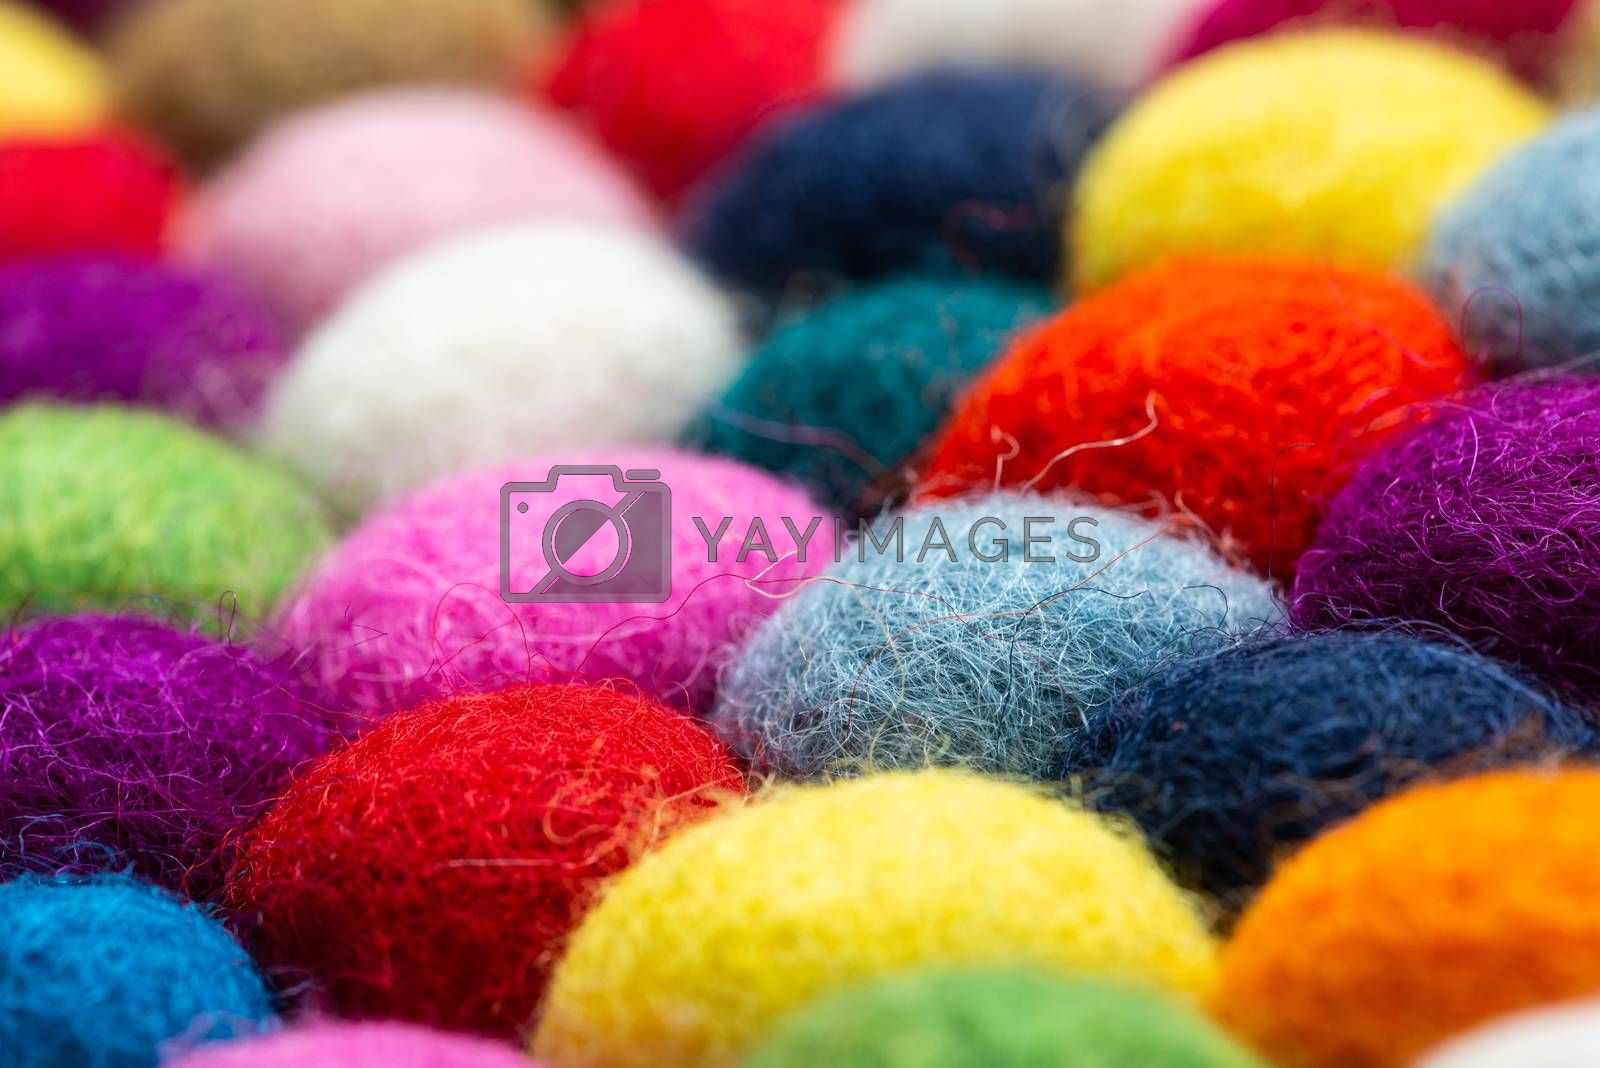 Multicolored felt ball rug detail, colorful texture